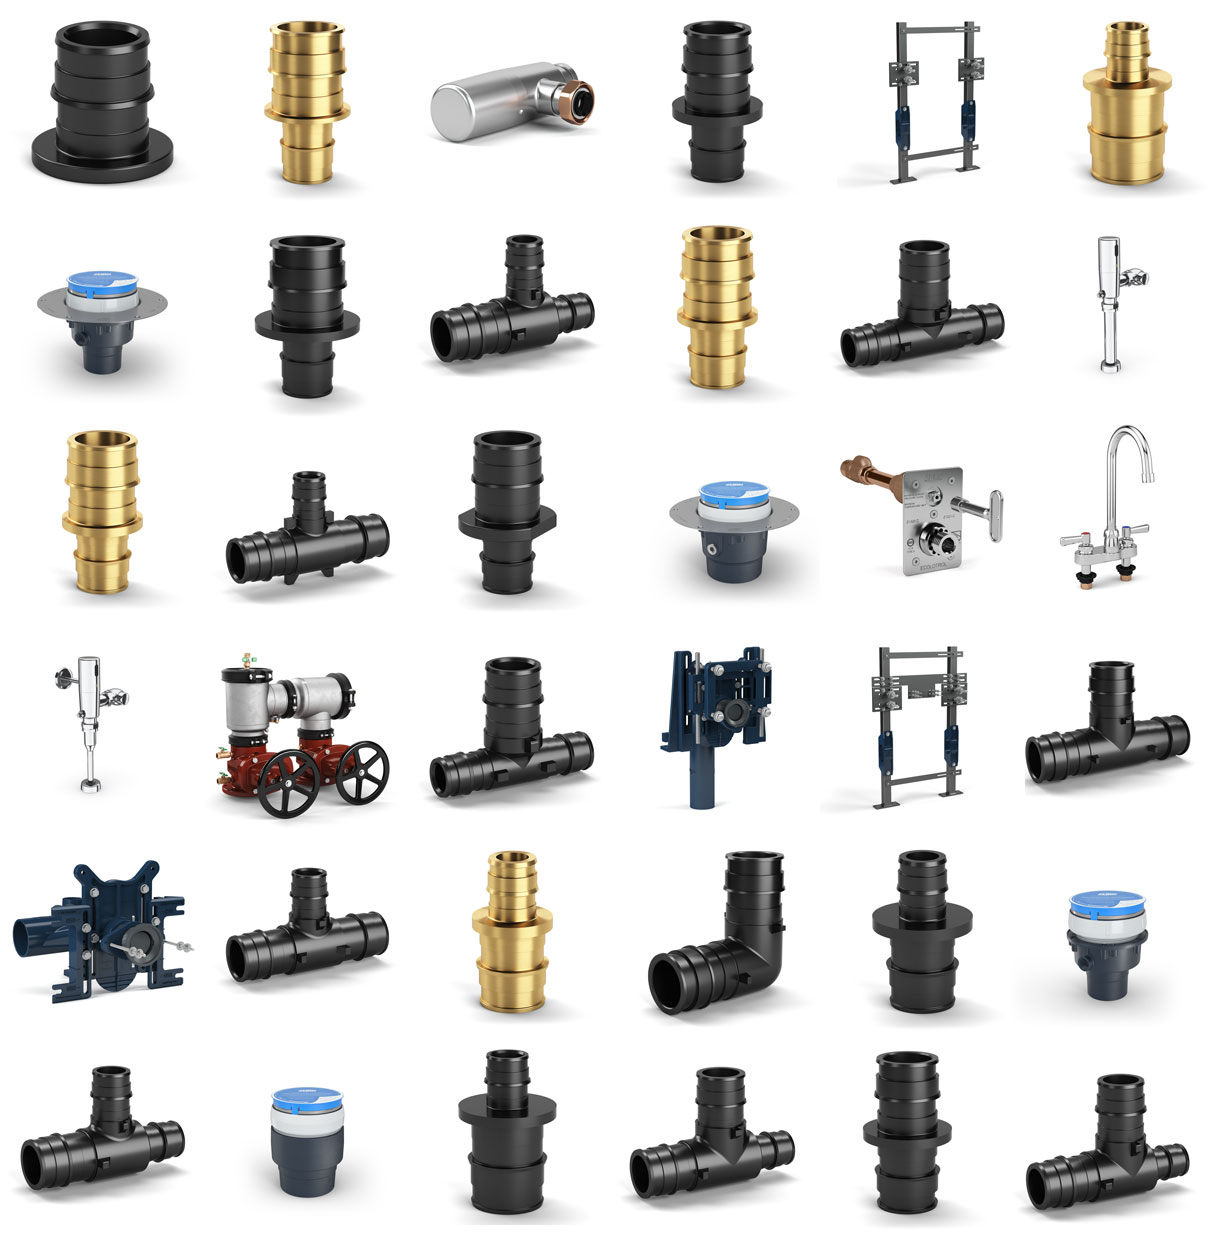 Group of plumbing and water solution product catalog images